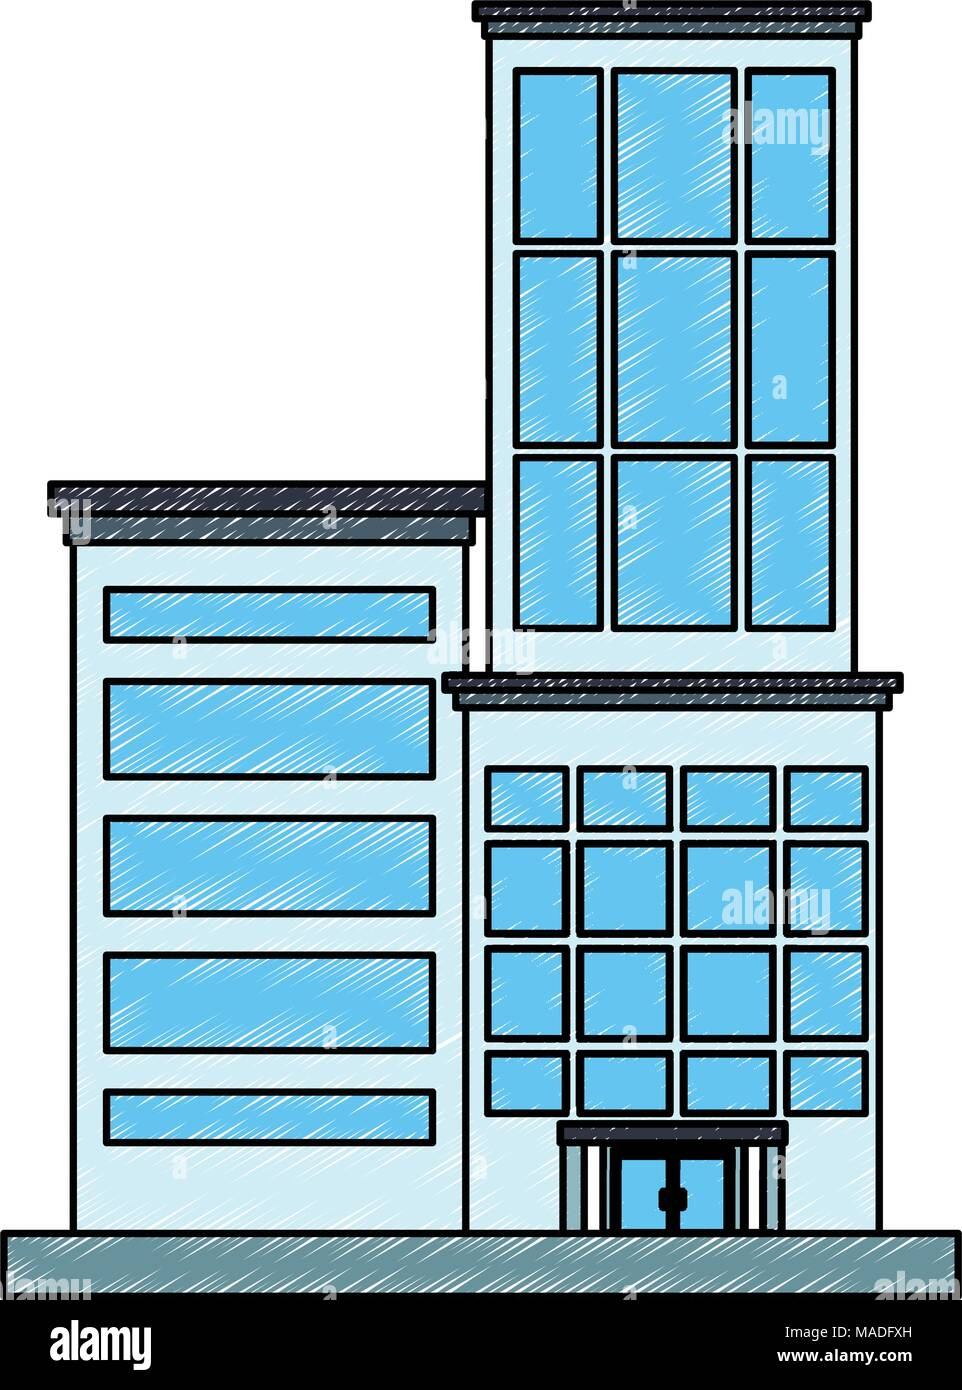 Illustration Cartoon City Downtown Office Stock Vector Images Alamy